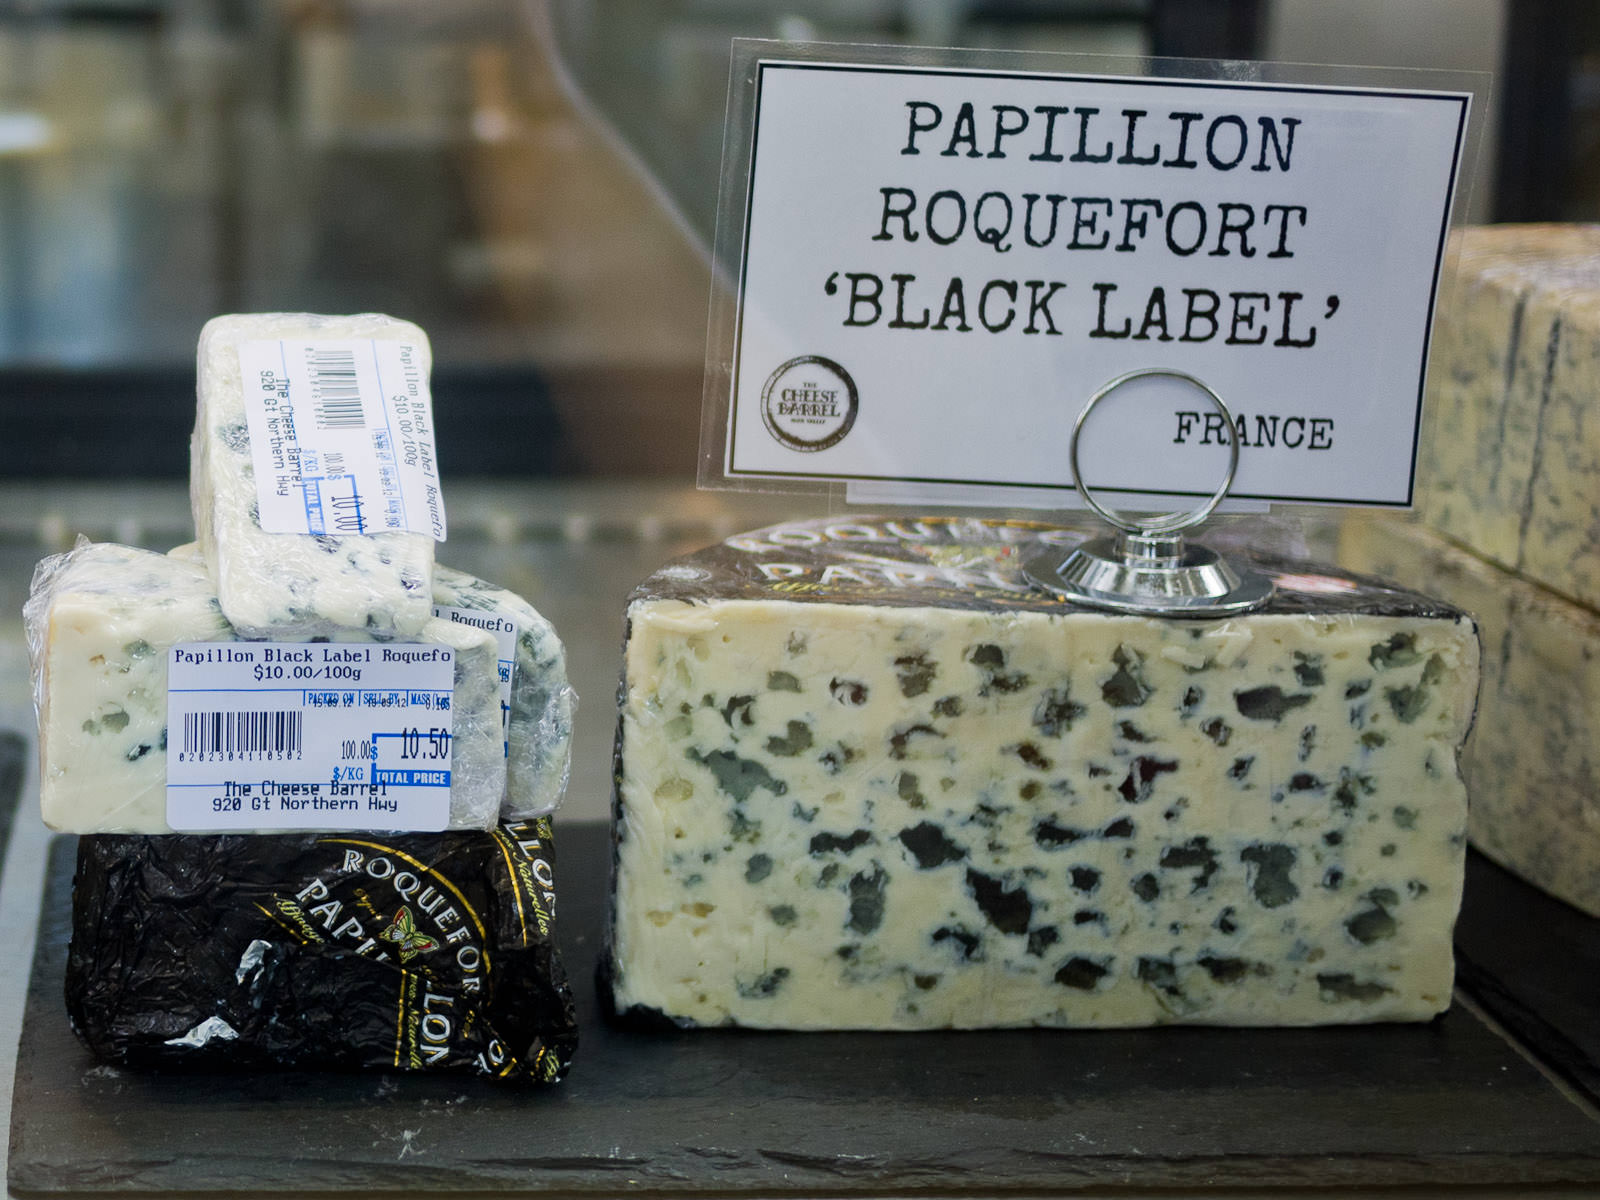 Papillion 'Black Label' Roquefort, blue mould ewe's milk cheese (France)